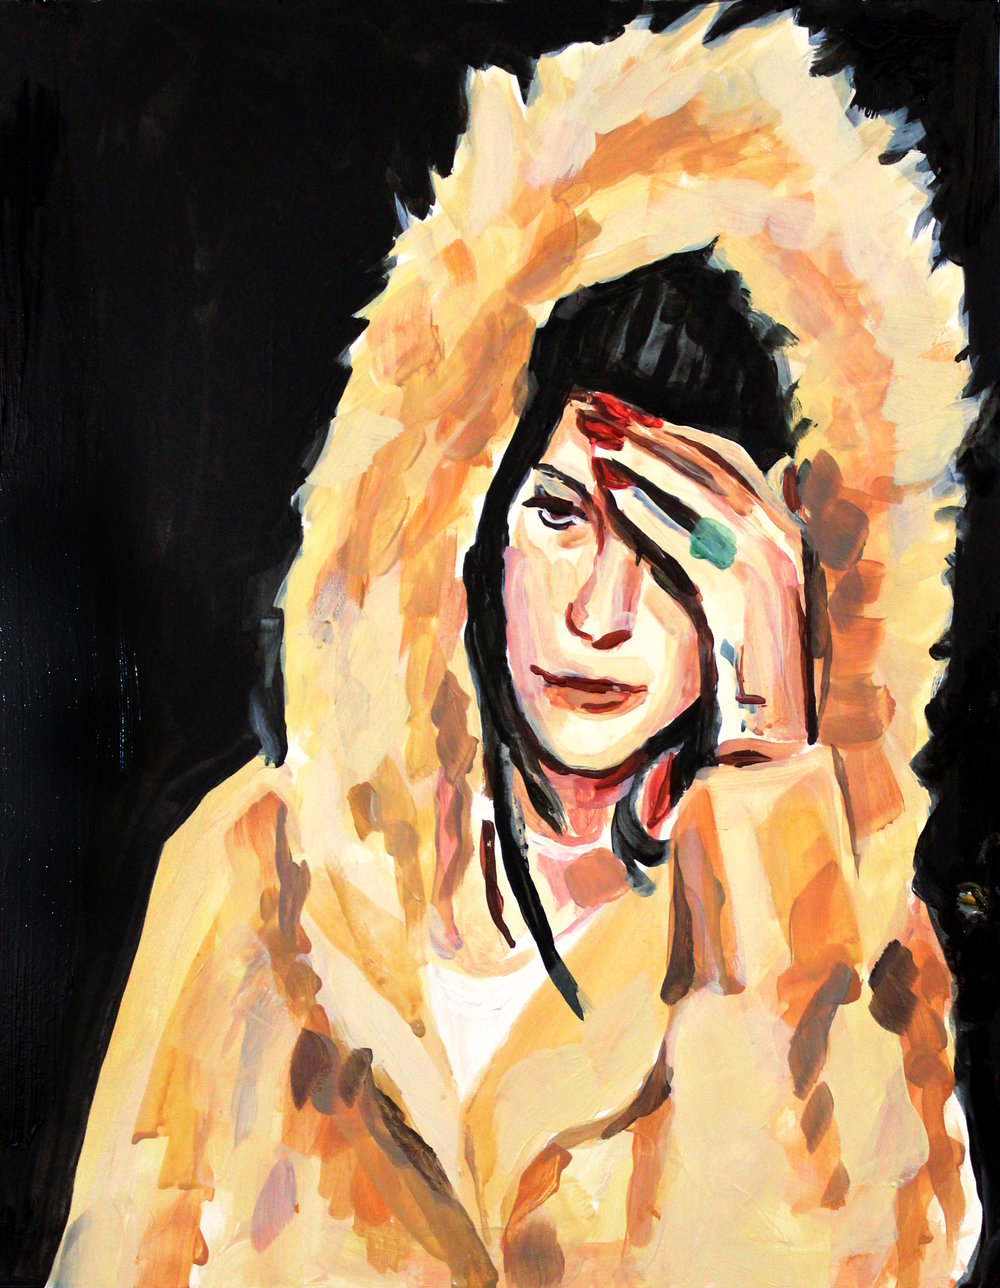 Laura Collins Lana Del Rey in a Fur Hood 12x16.JPG